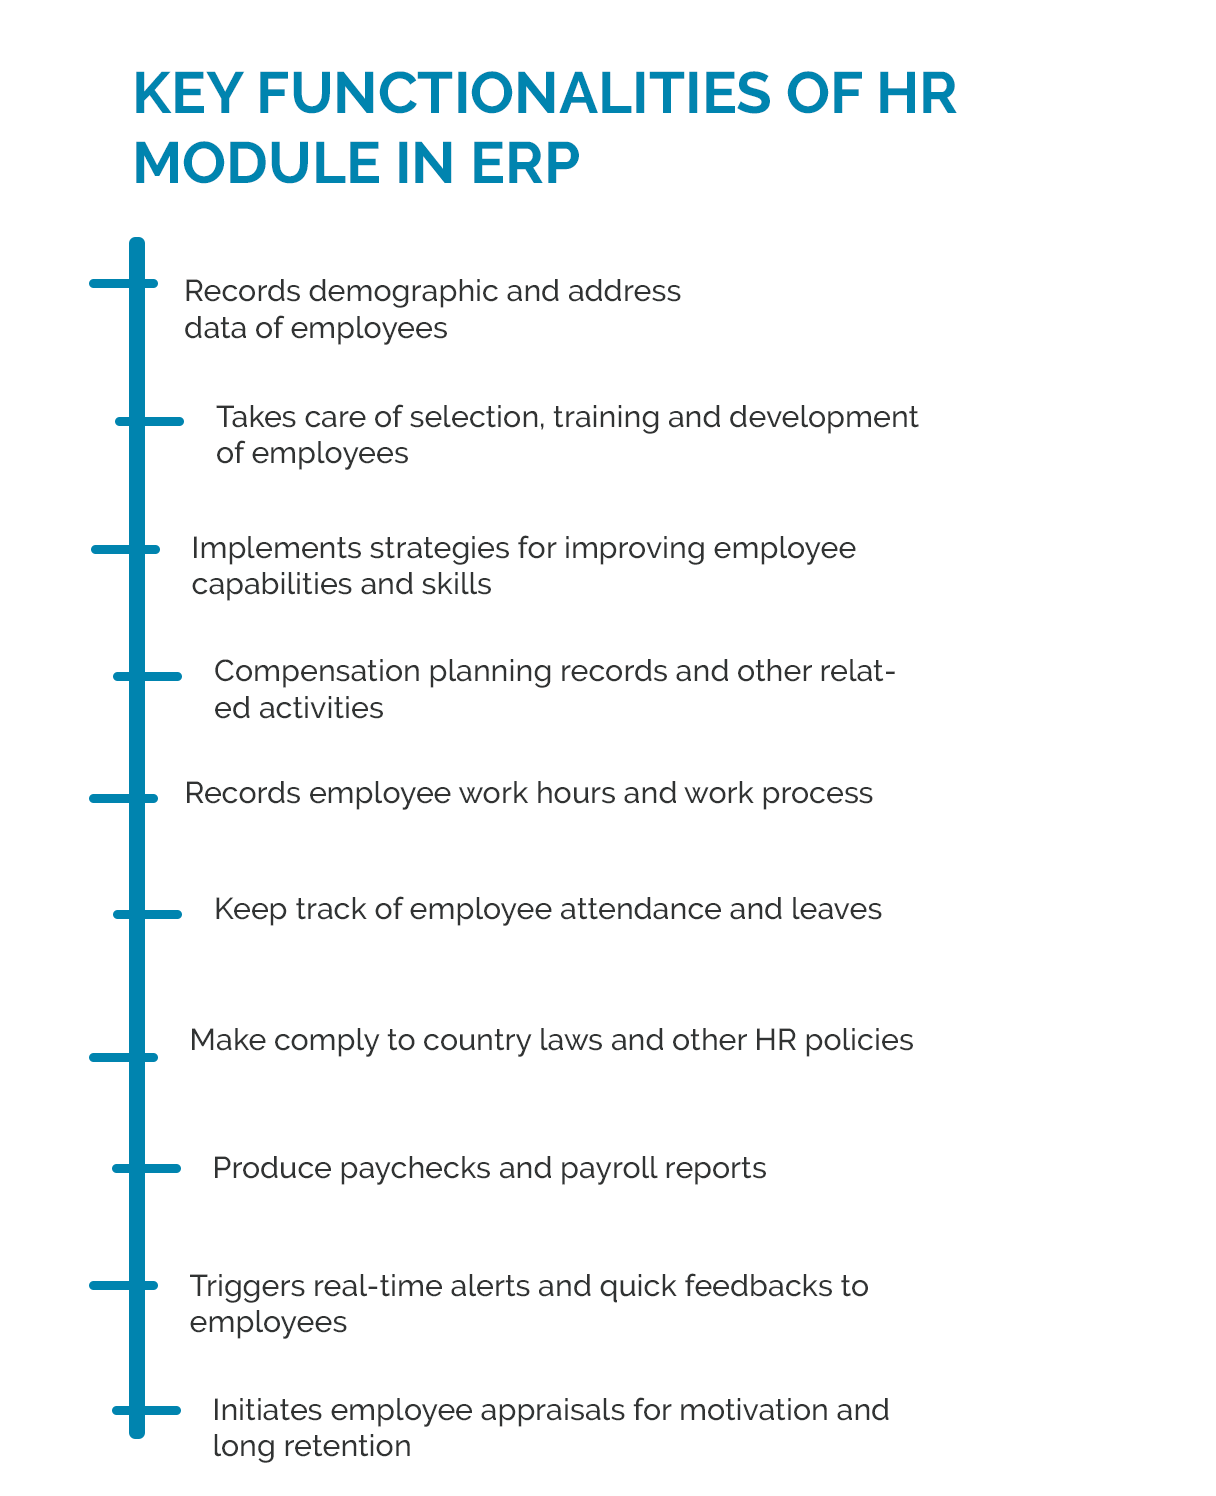 significance-of-hr-module-in-erp